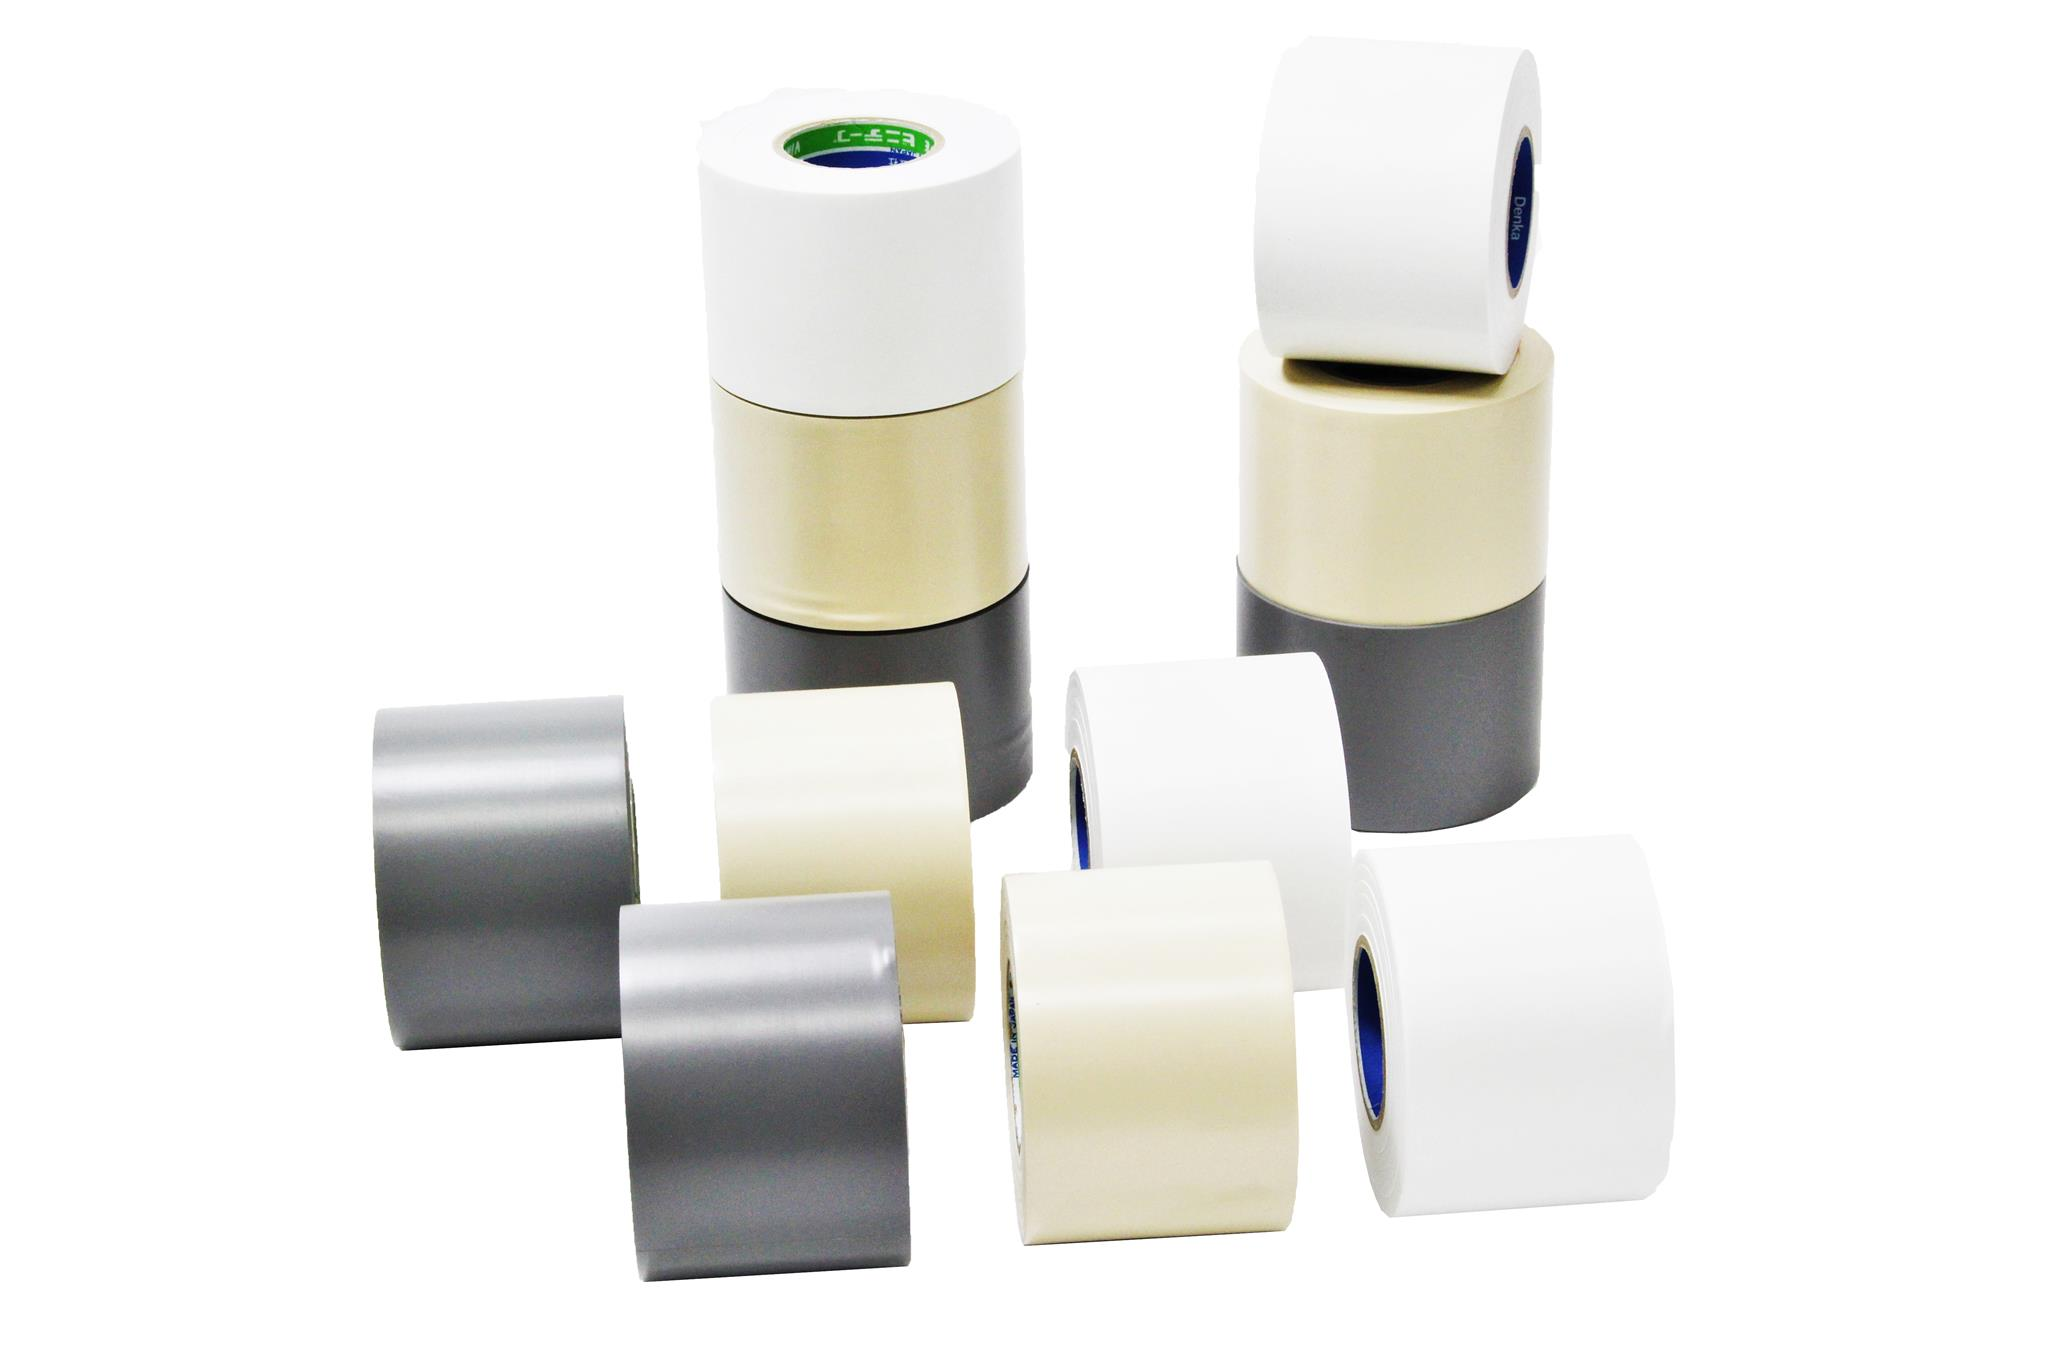 Vinyl tape for air conditioning ducts (non-adhesive type)